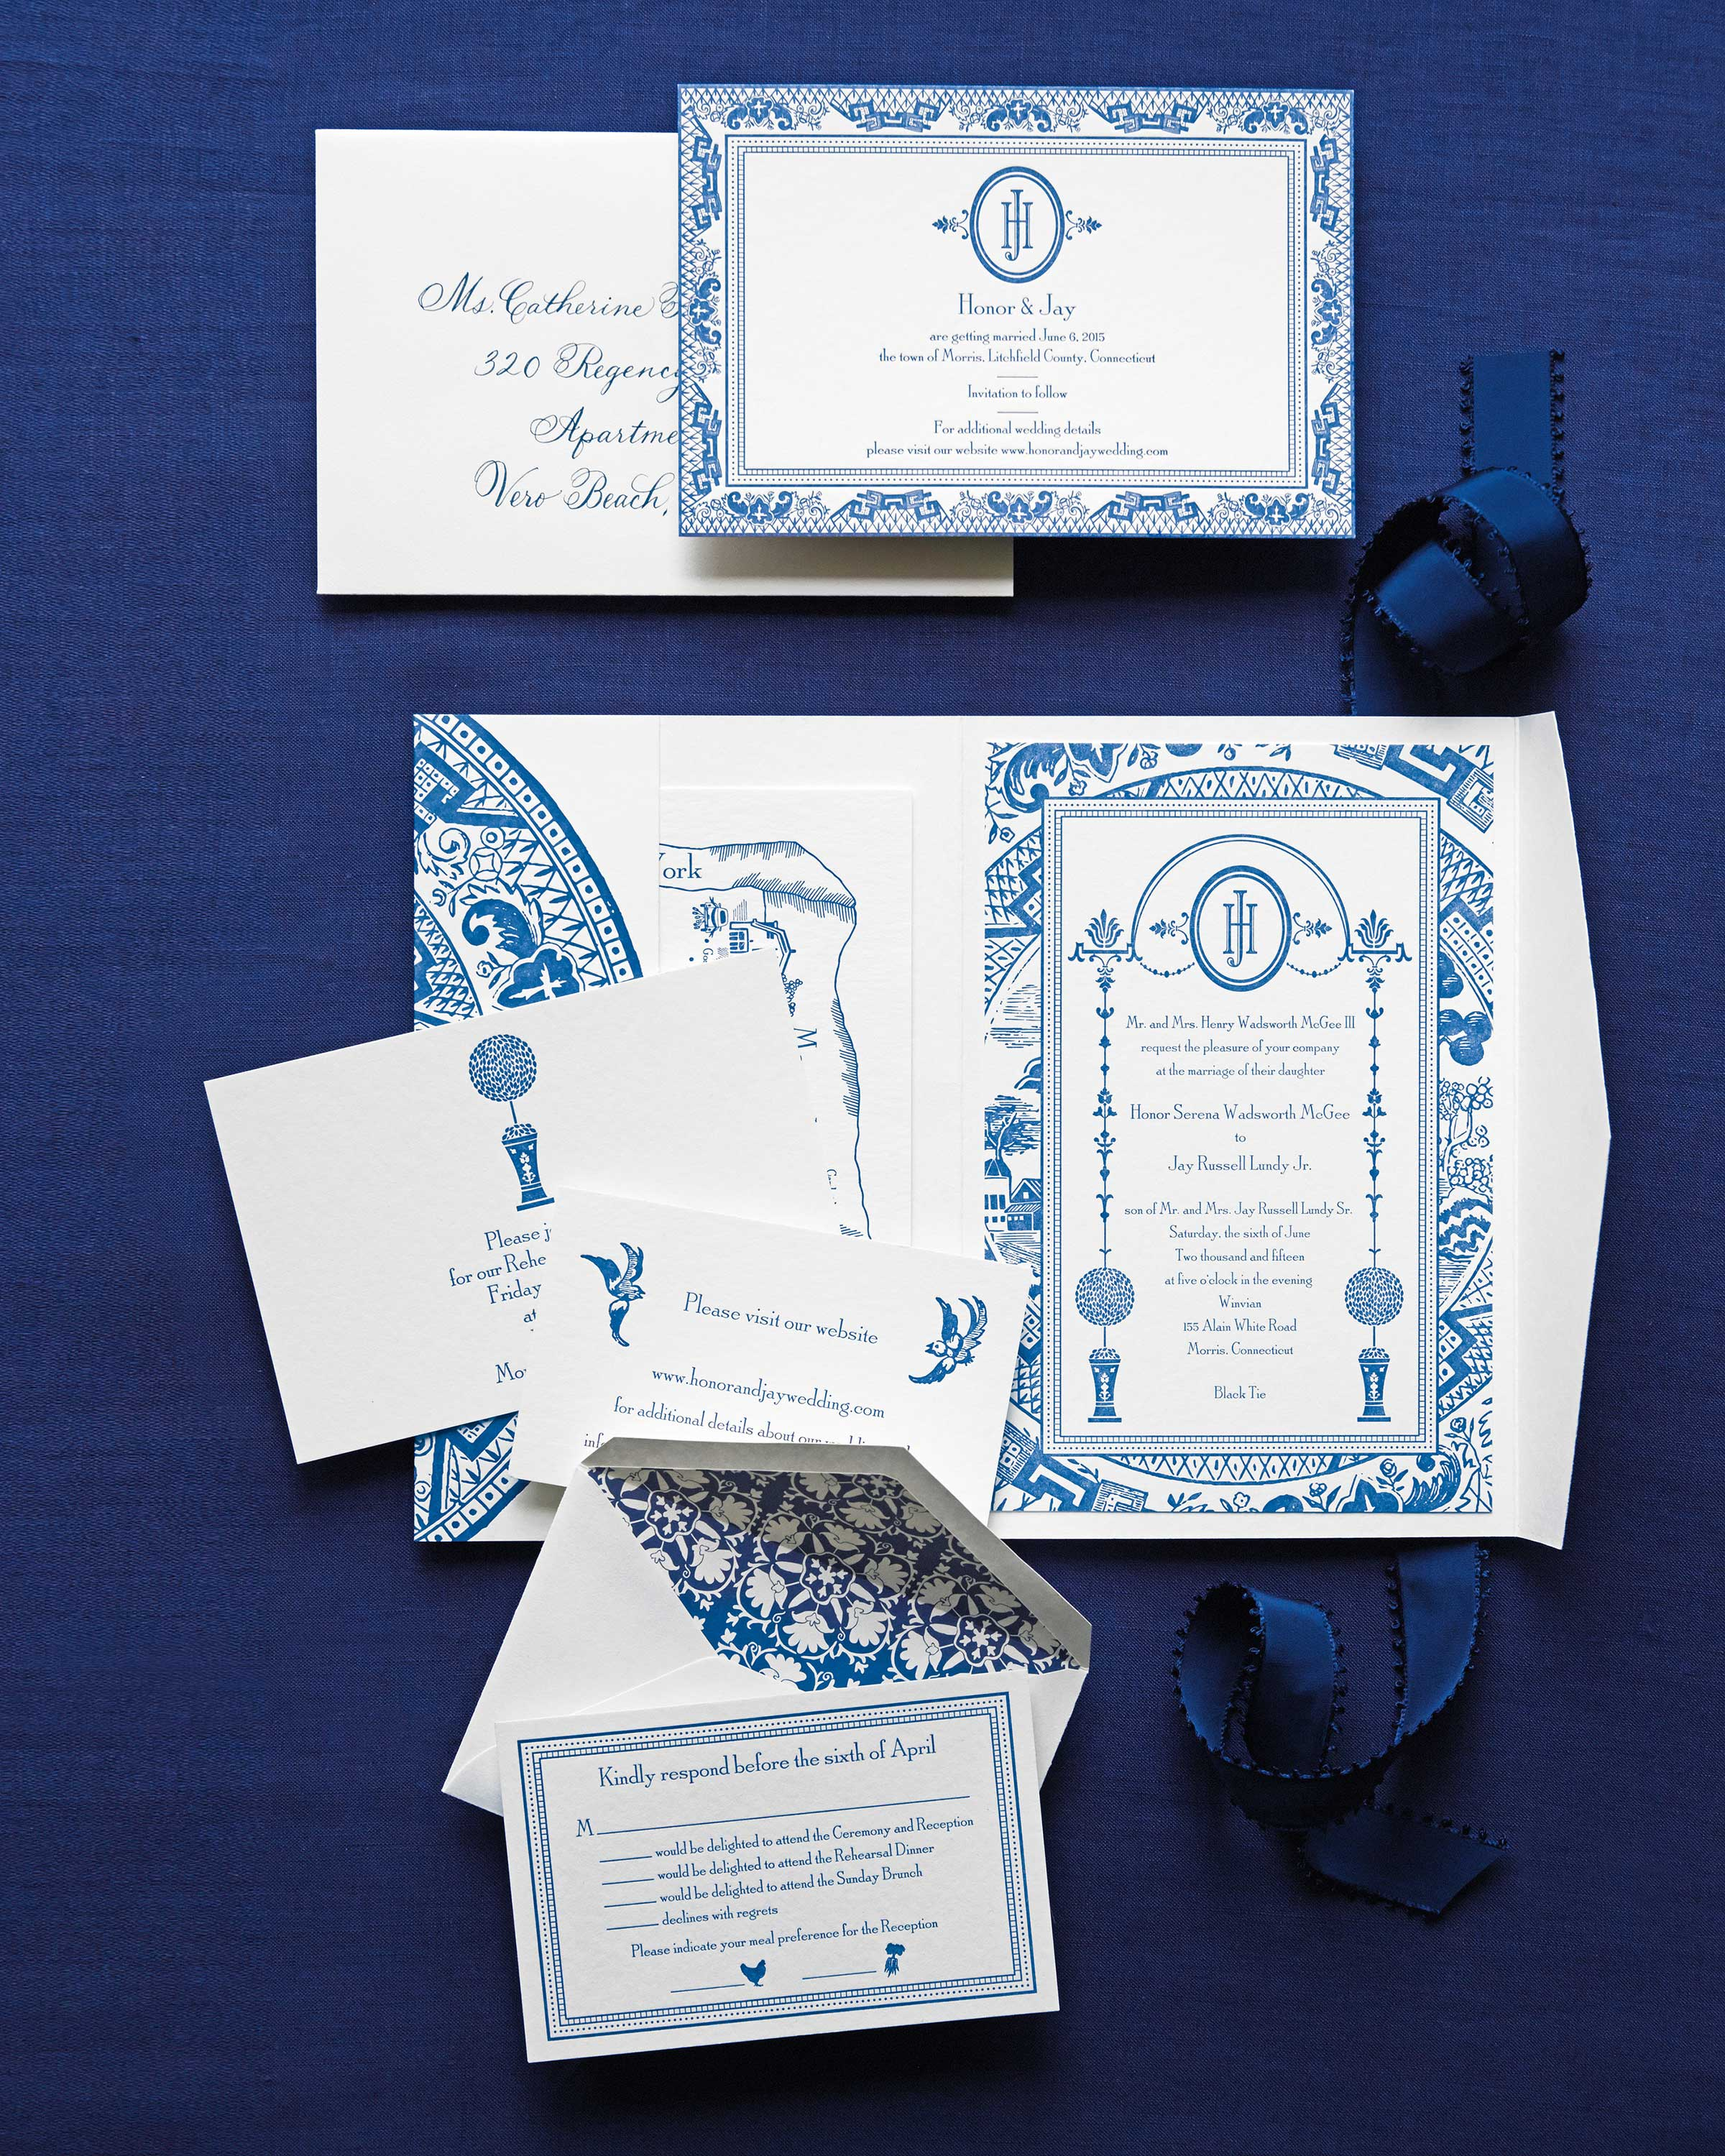 mhonor-jay-wedding-connecticut-announcement-invitations-nautical-040-d112238.jpg